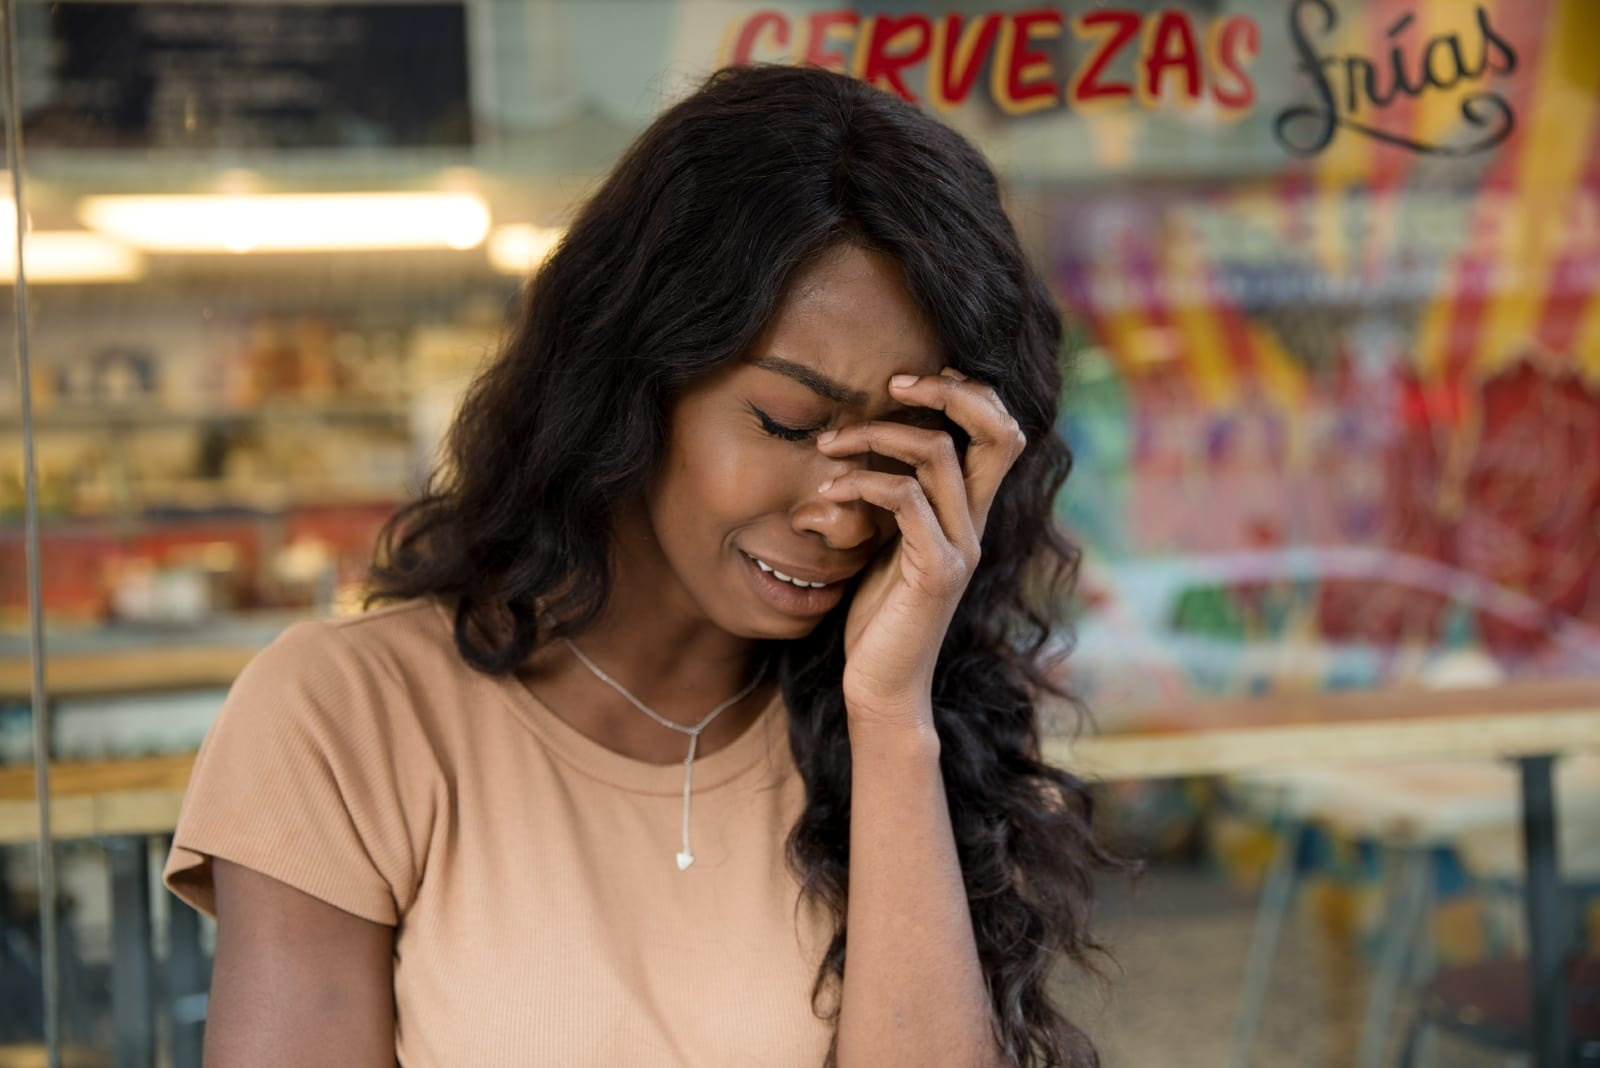 woman crying while standing near storefront